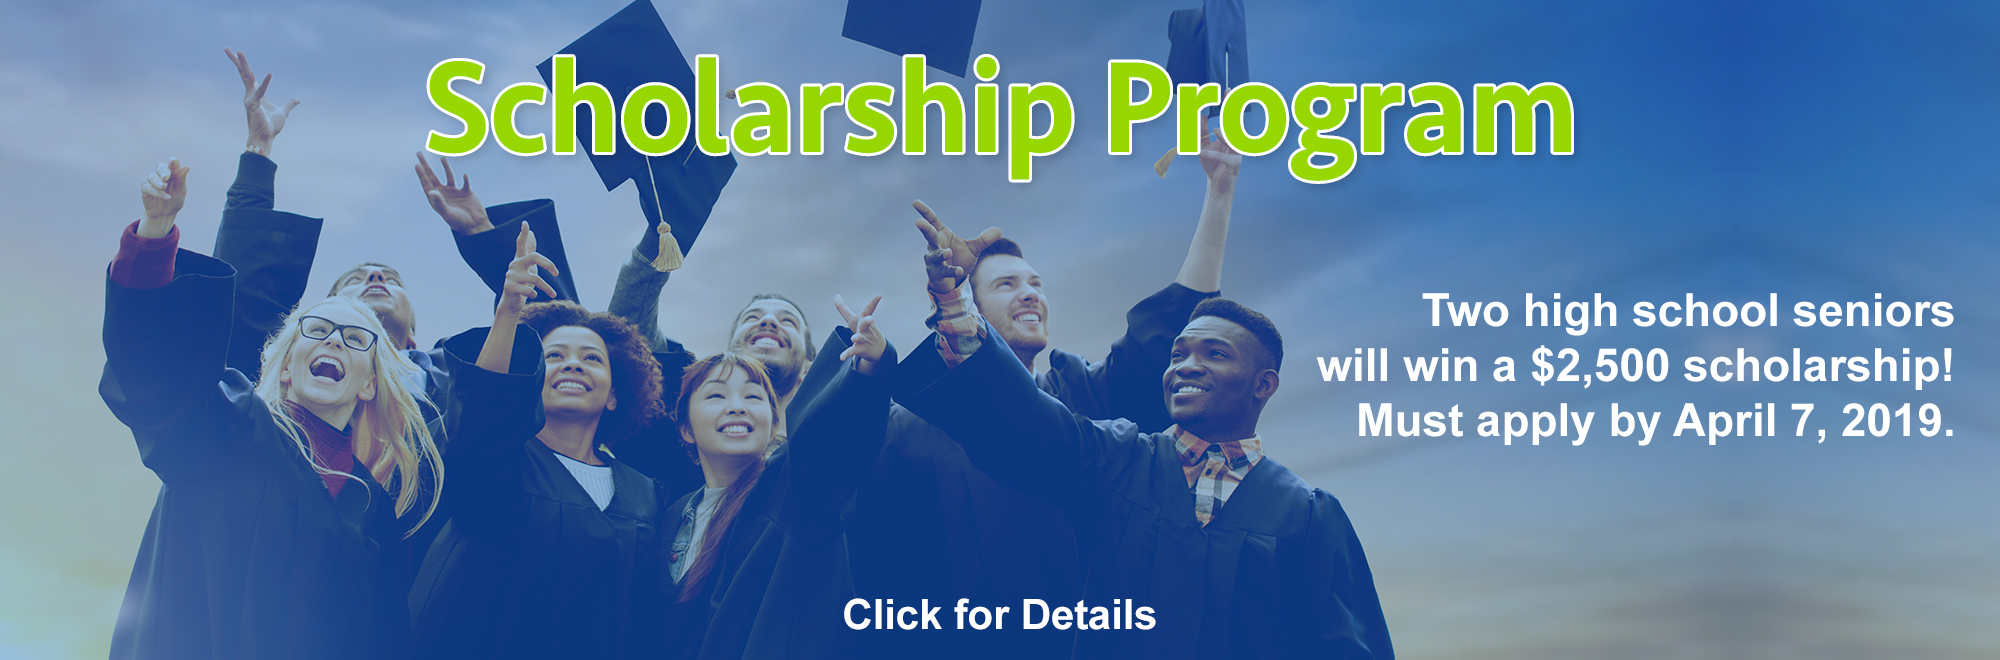 SACFCU's 2019 Scholarship Application is now live. Two high school seniors will win a $2500 scholarship! Must apply by April 7, 2019. Click for details